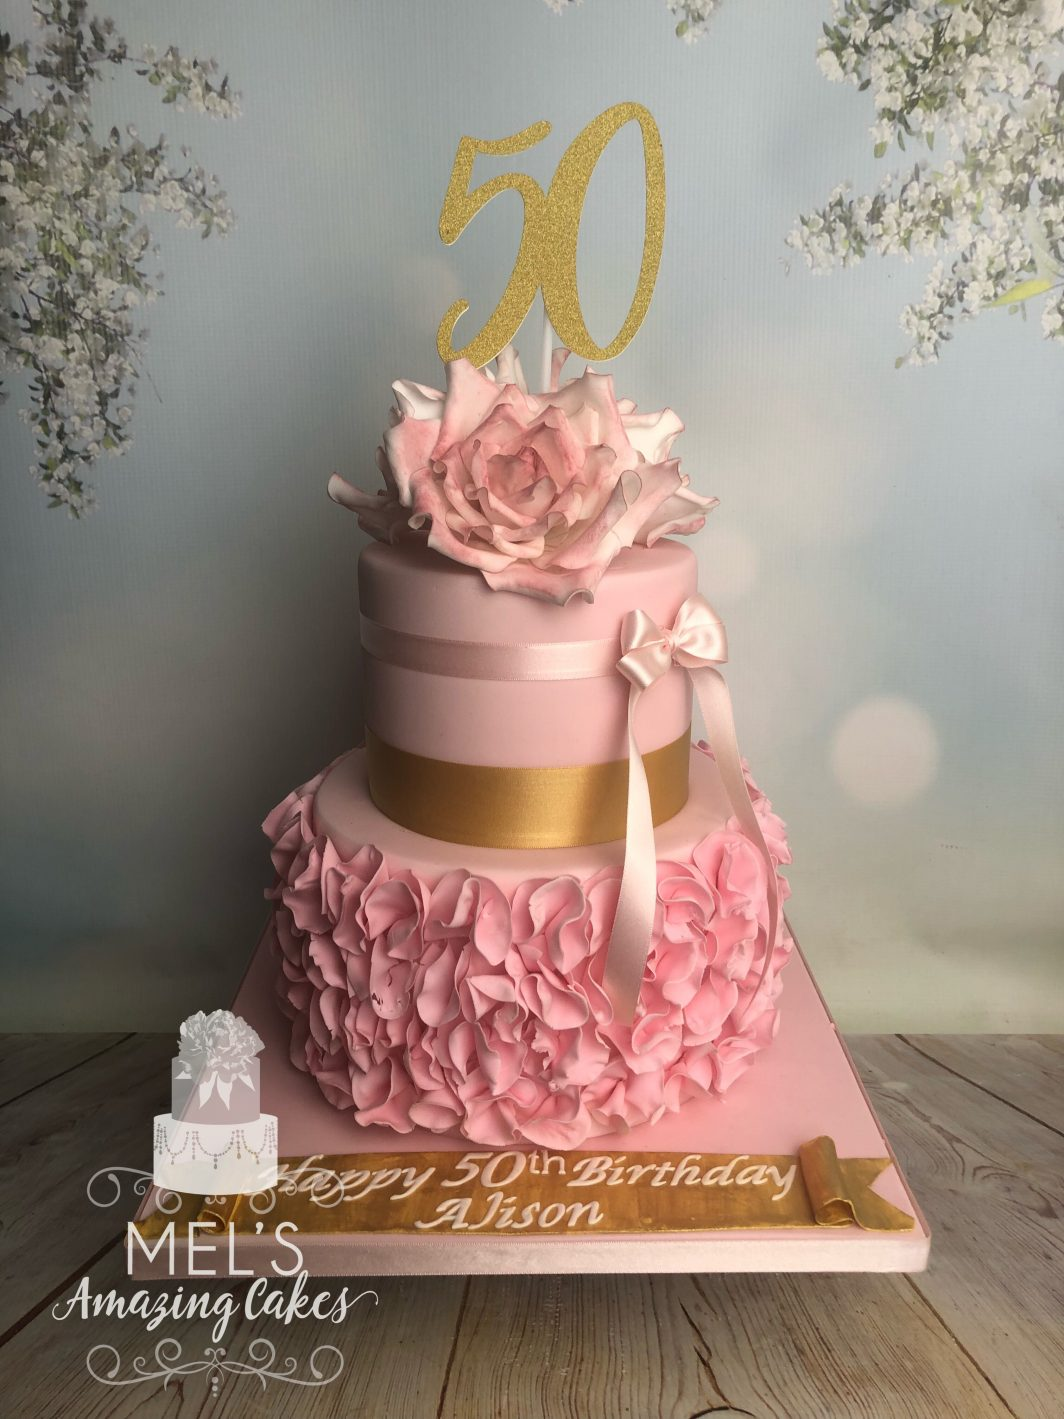 Marvelous Pink Birthday Cake Archives Mels Amazing Cakes Funny Birthday Cards Online Sheoxdamsfinfo